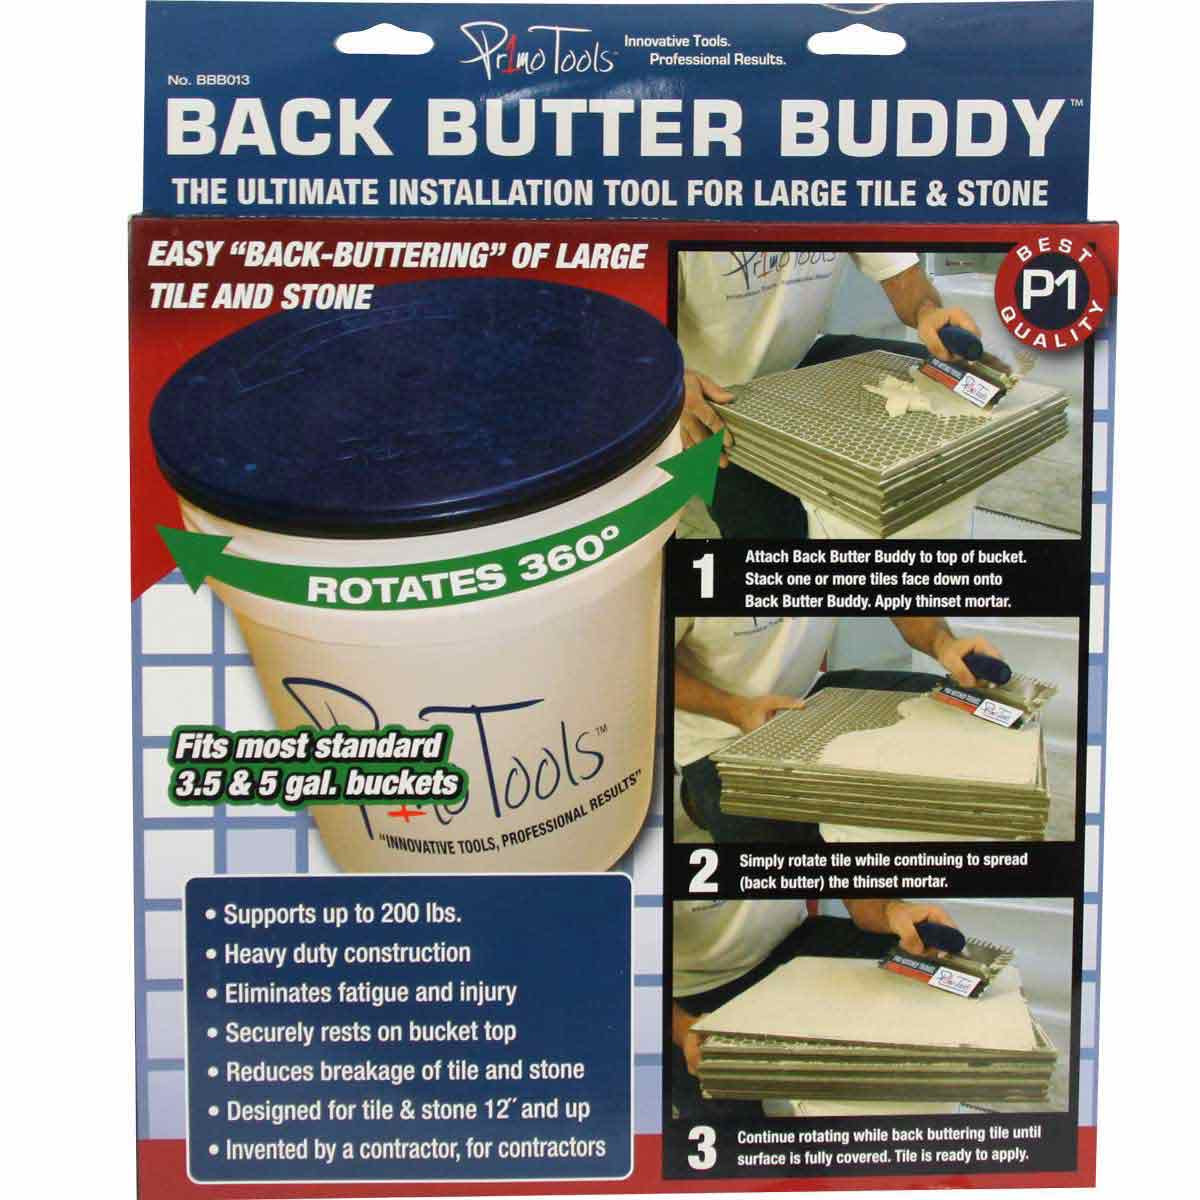 Back Butter Buddy Contractors Direct